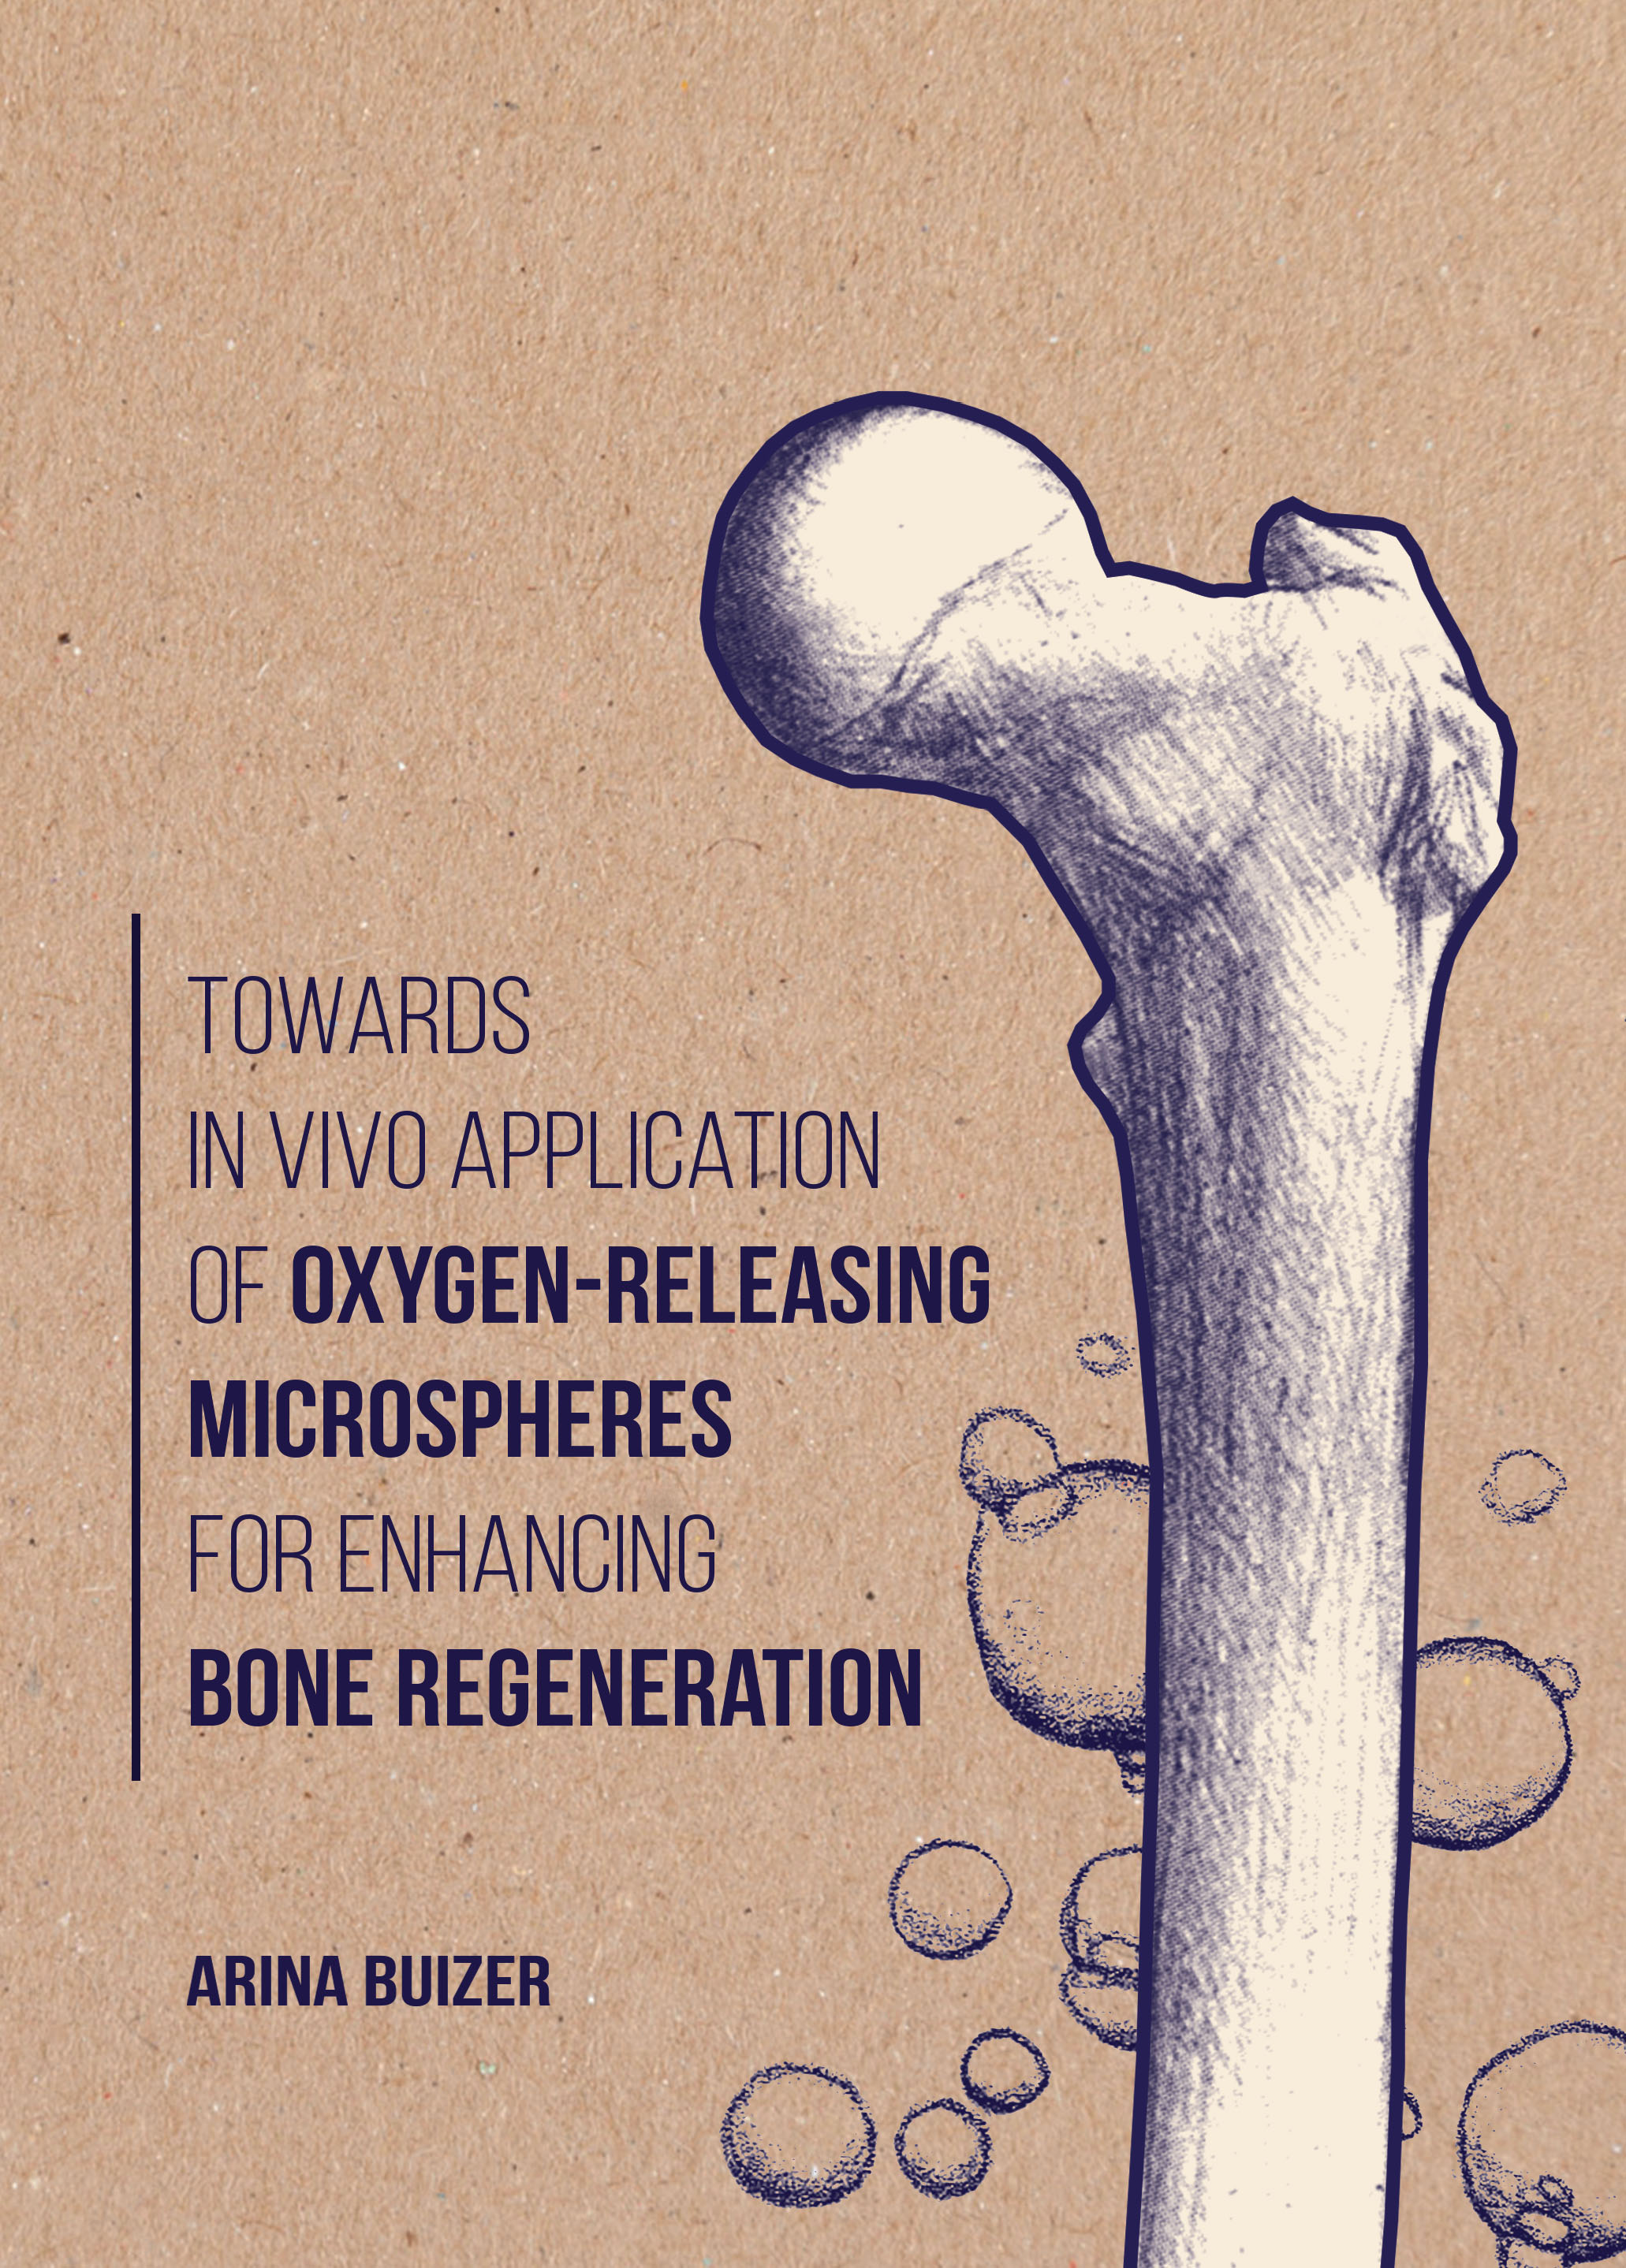 Towards in vivo application of oxygen-releasing microspheres for enhancing bone regeneration